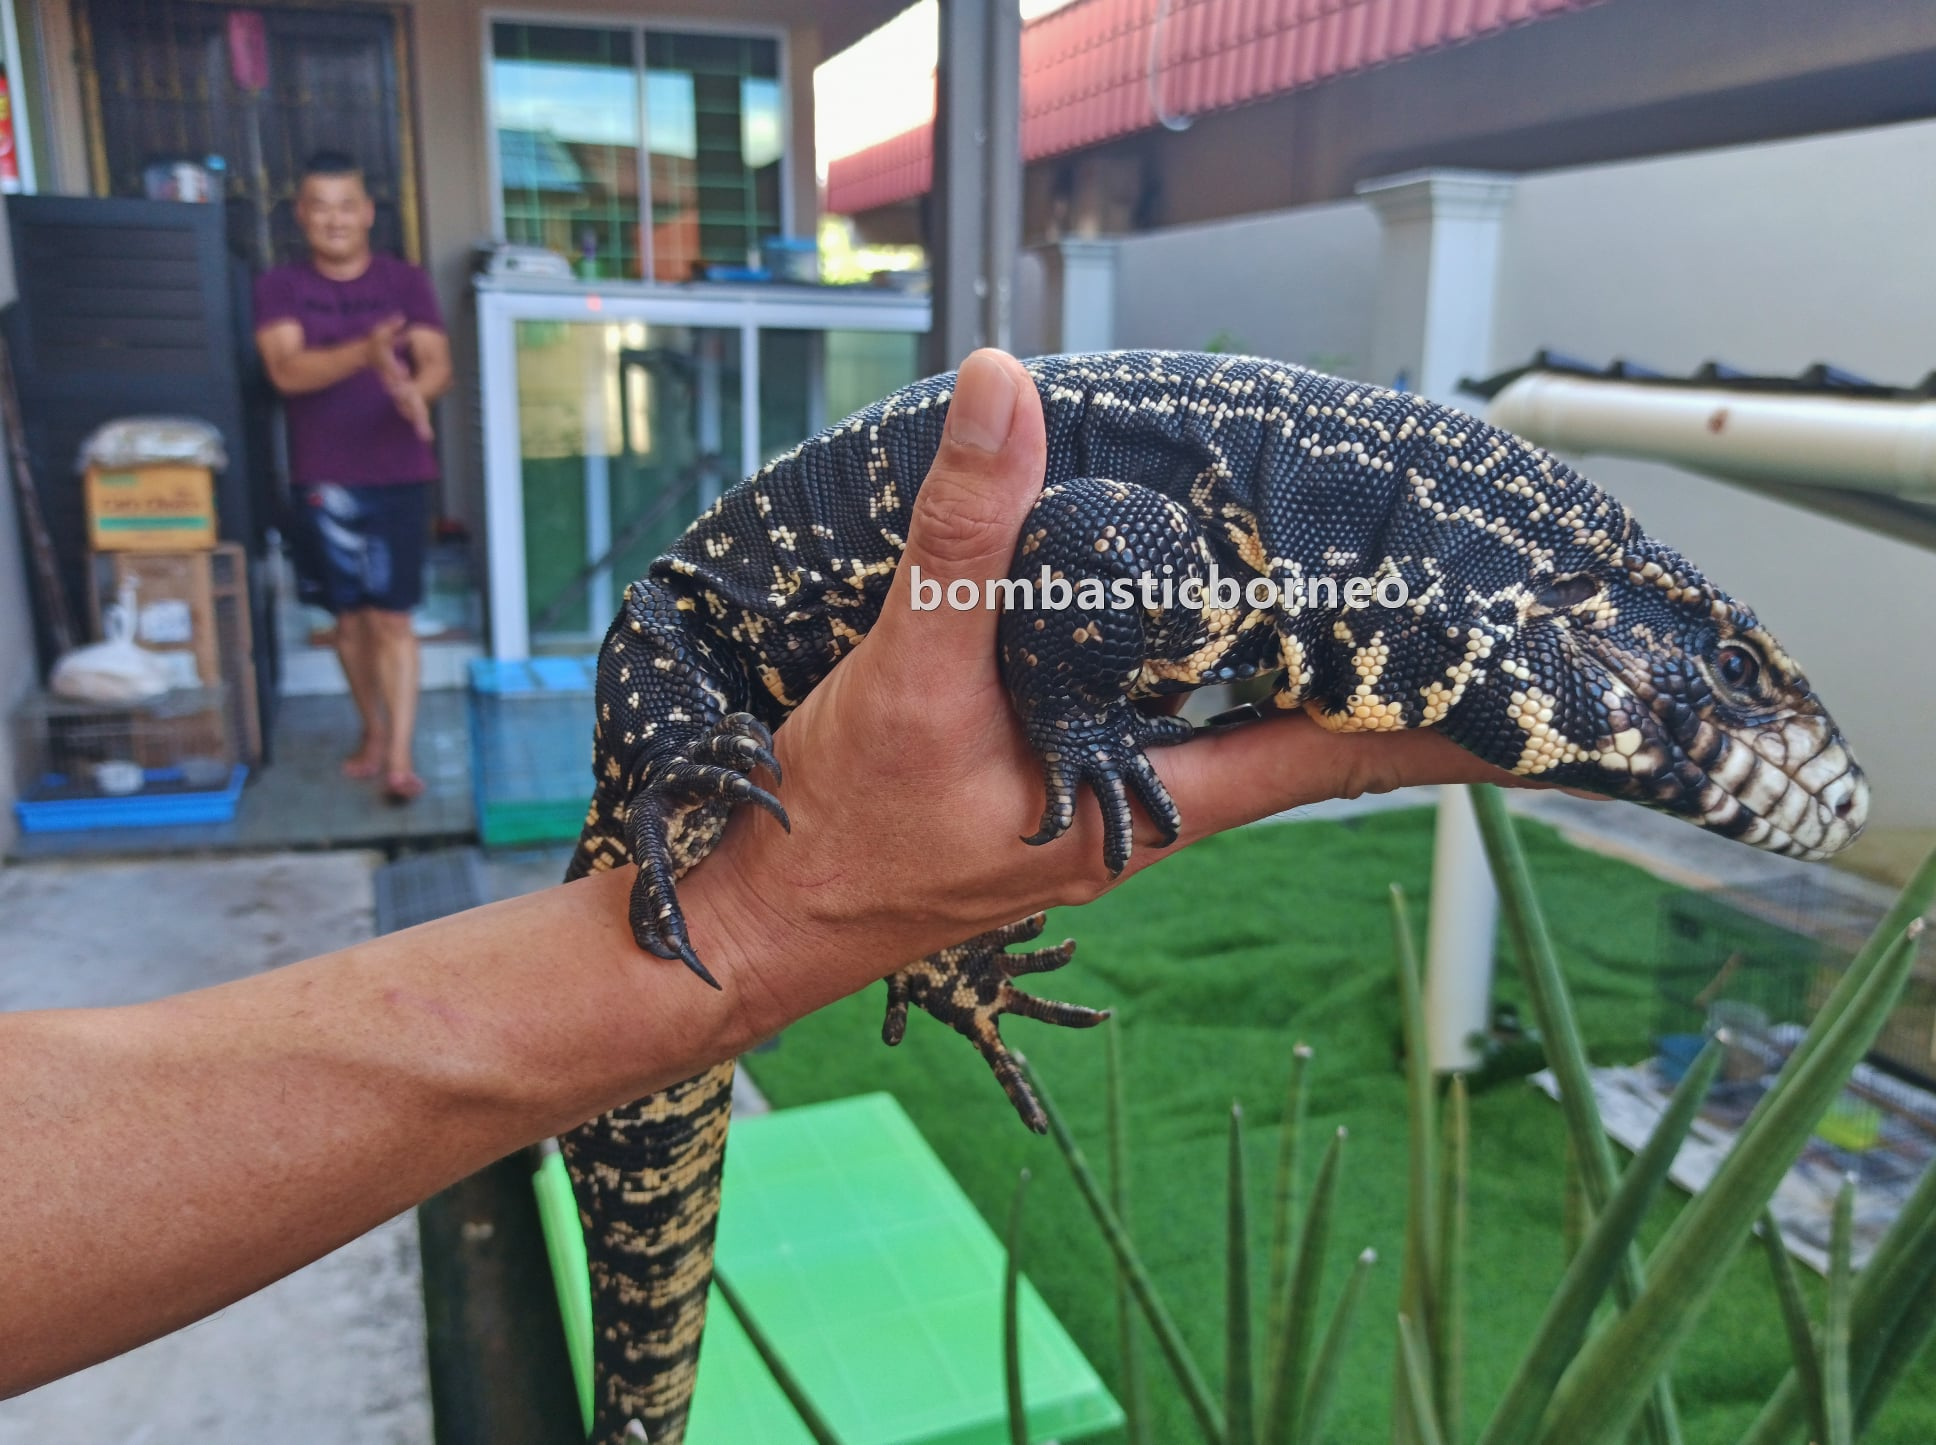 biawak, Haiwan Peliharaan Eksotik, Exotic Animal, hobby, exploration, Kho Animal Enterprise, Sarawak, Malaysia, Tourism, tourist attraction, travel guide, 砂拉越异国宠物店, 古晋蜥蜴嗜好,